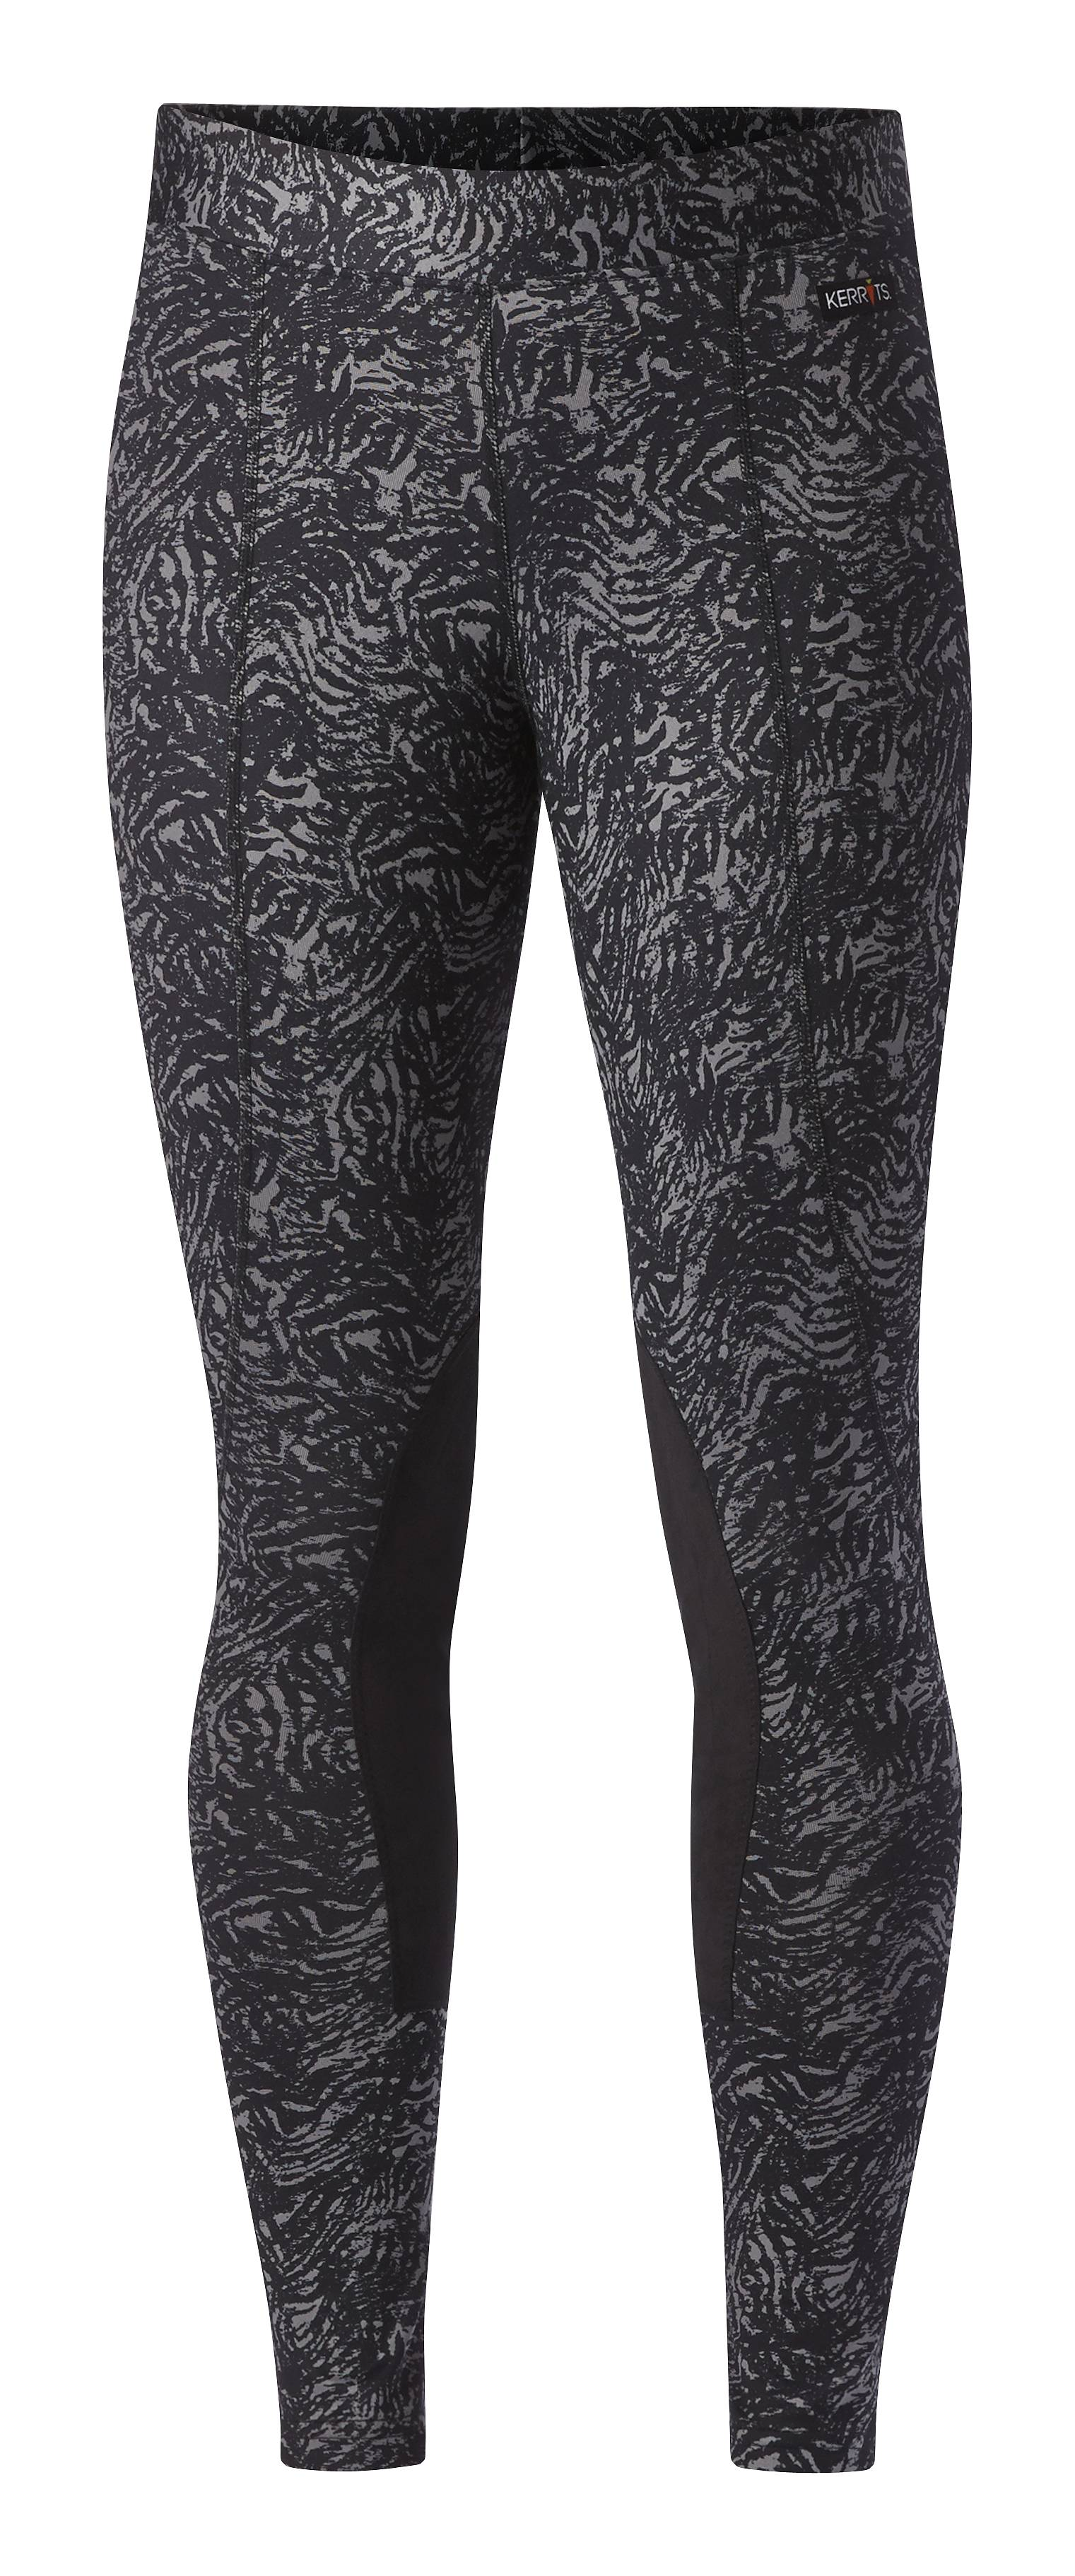 Kerrits Flow Rise Performance Tights - Ladies, Kneepatch